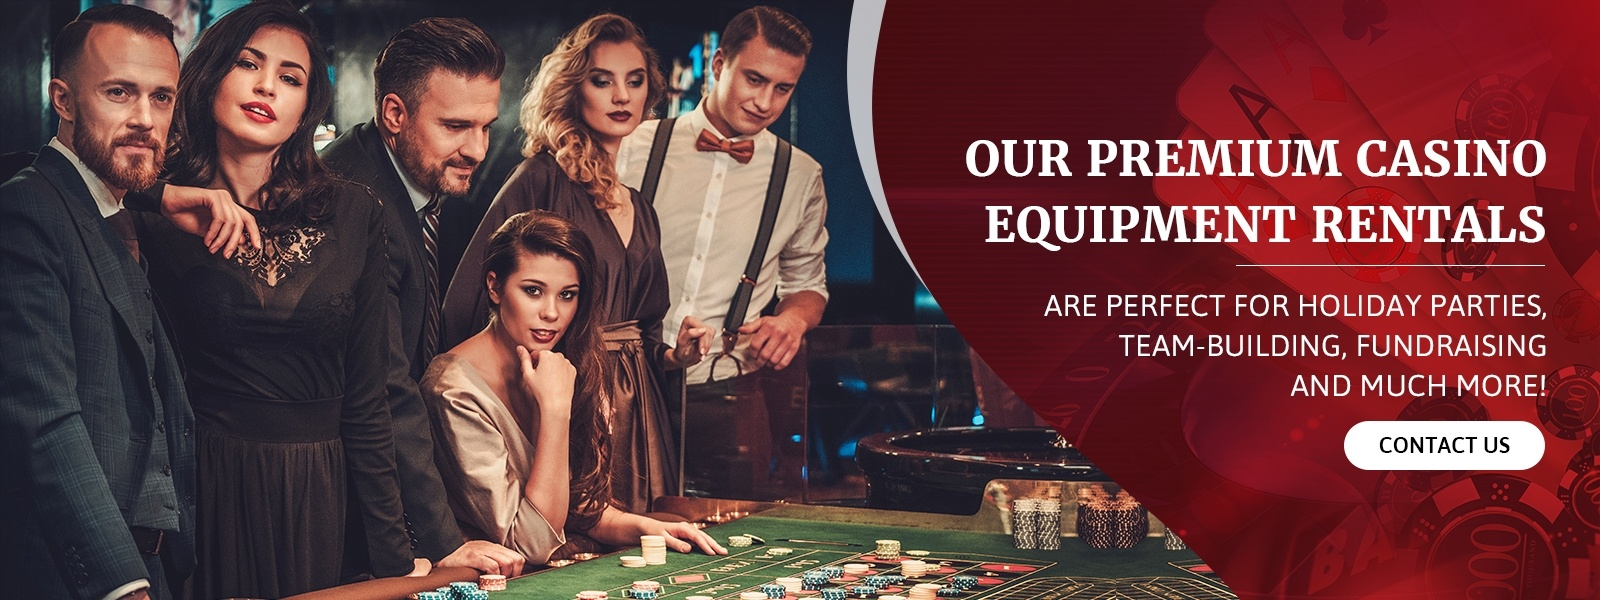 Corporate Casino Events Houston TX